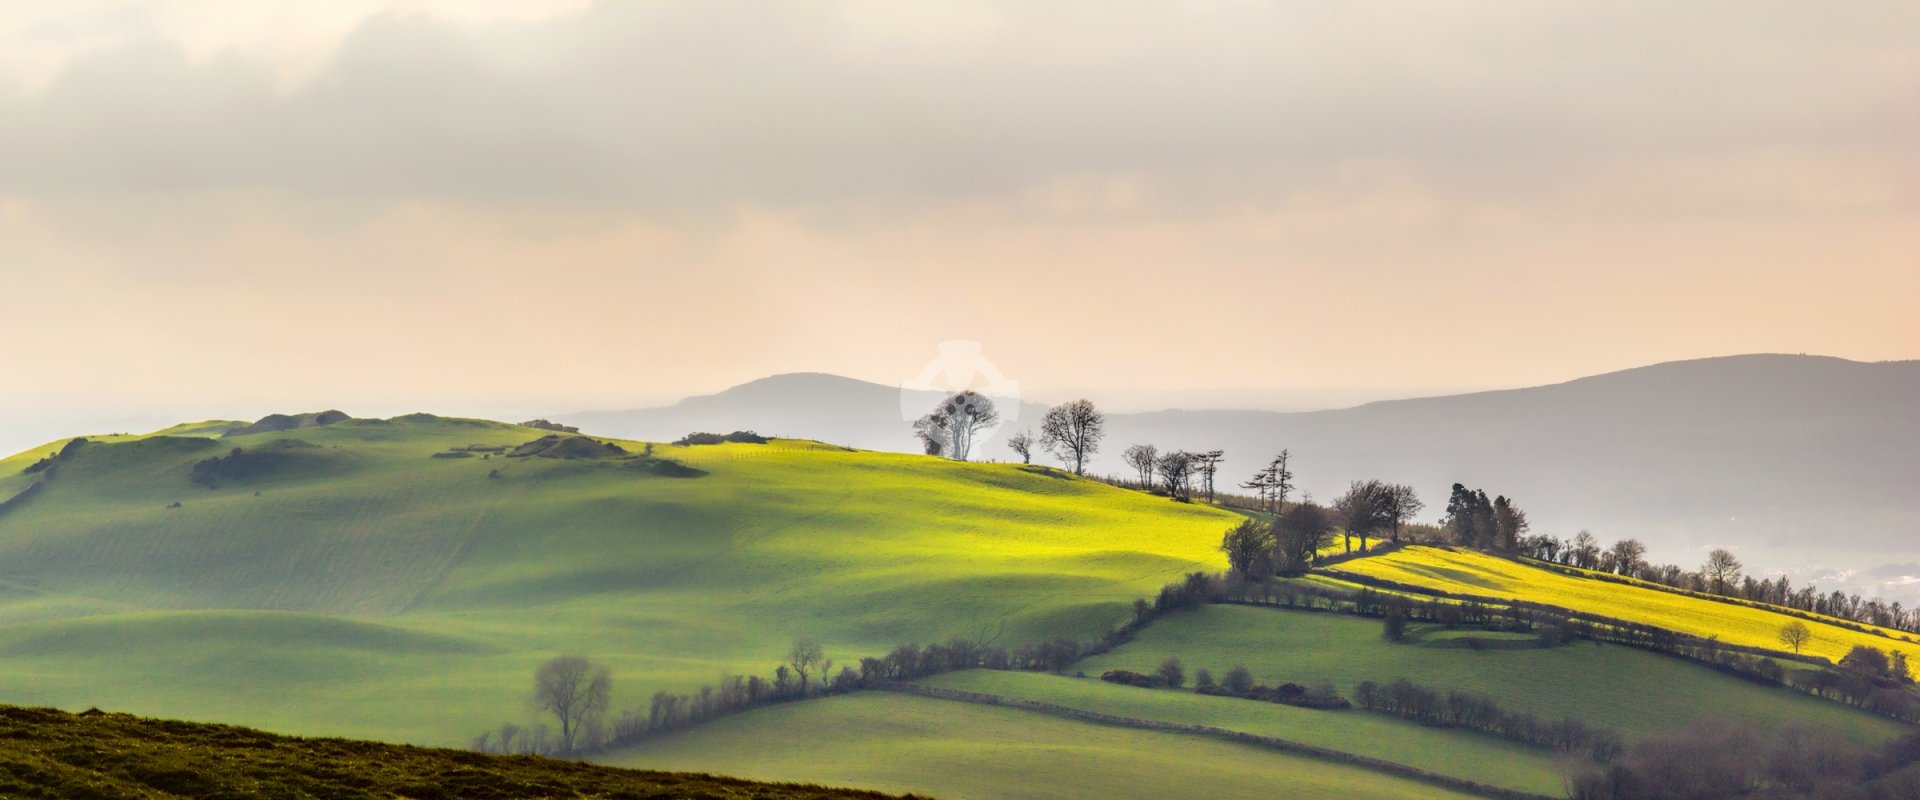 Loughcrew landscape, Co. Meath, Ireland